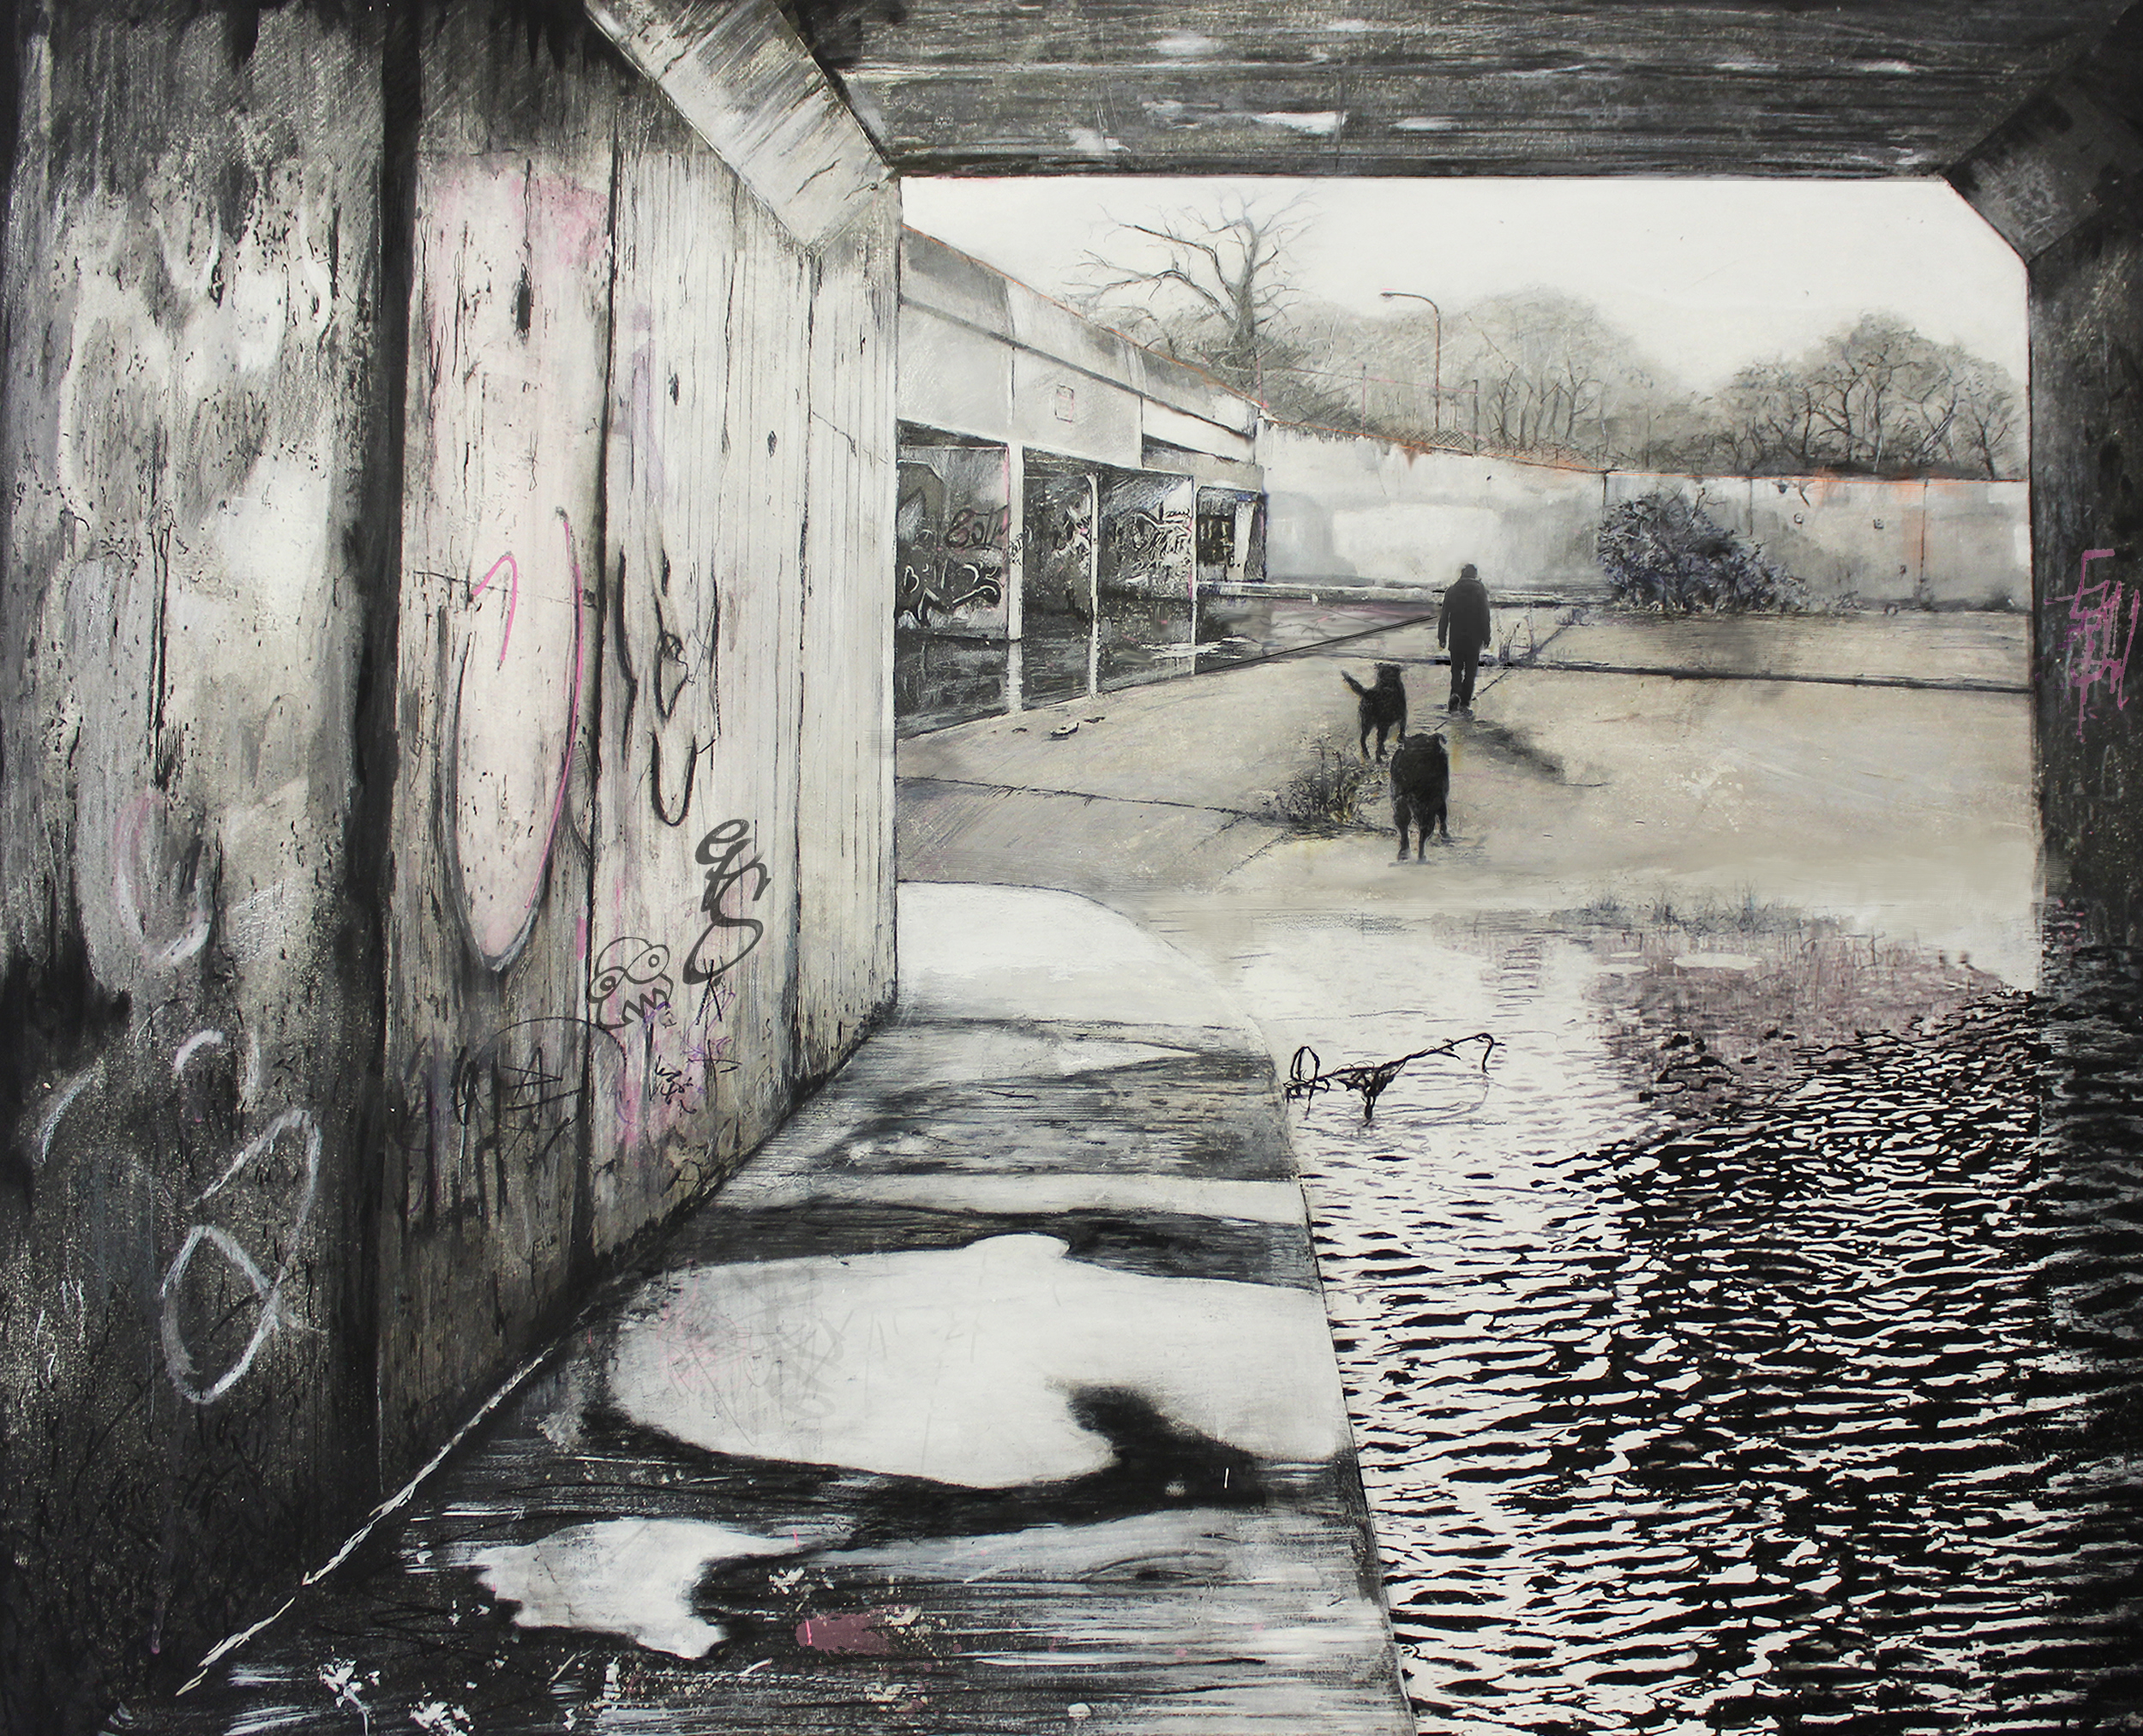 Only the landscape has changed, 2018 Pencils, charcoal, highlighter pens, ball-point pens, spray paint on gesso hardboard, 83 x 100 cm